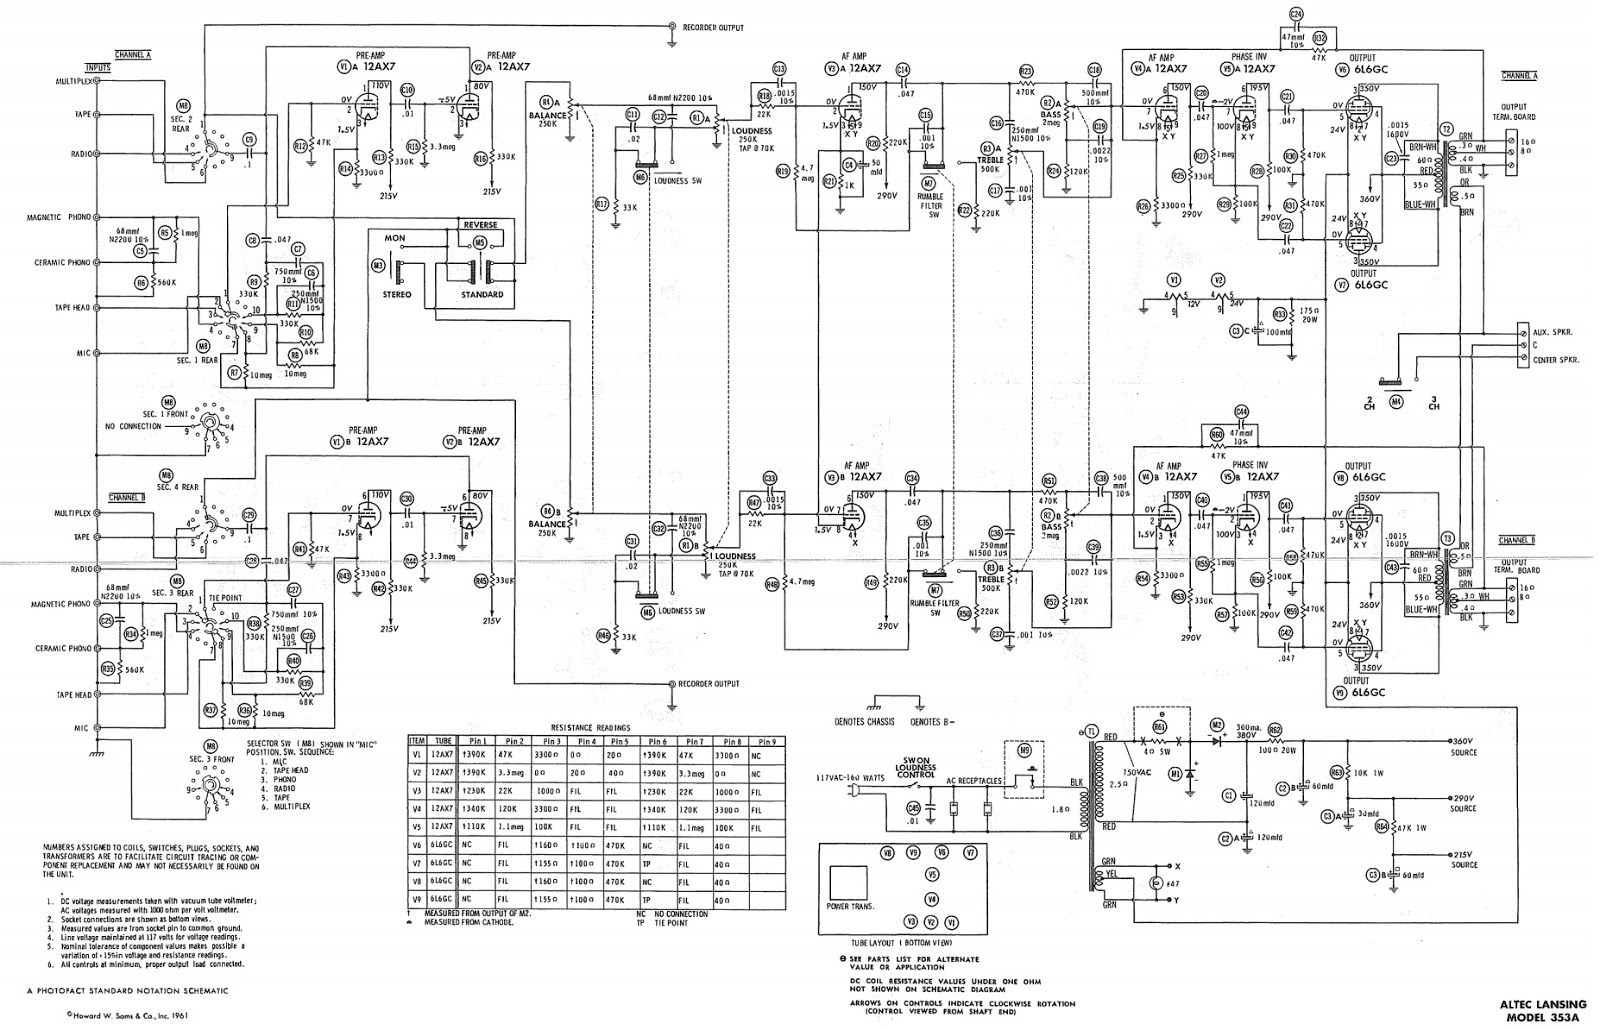 Roadstar Wiring Diagram Library Yamaha V Star 950 Altec Electrical Diagrams Schematics Aiwa